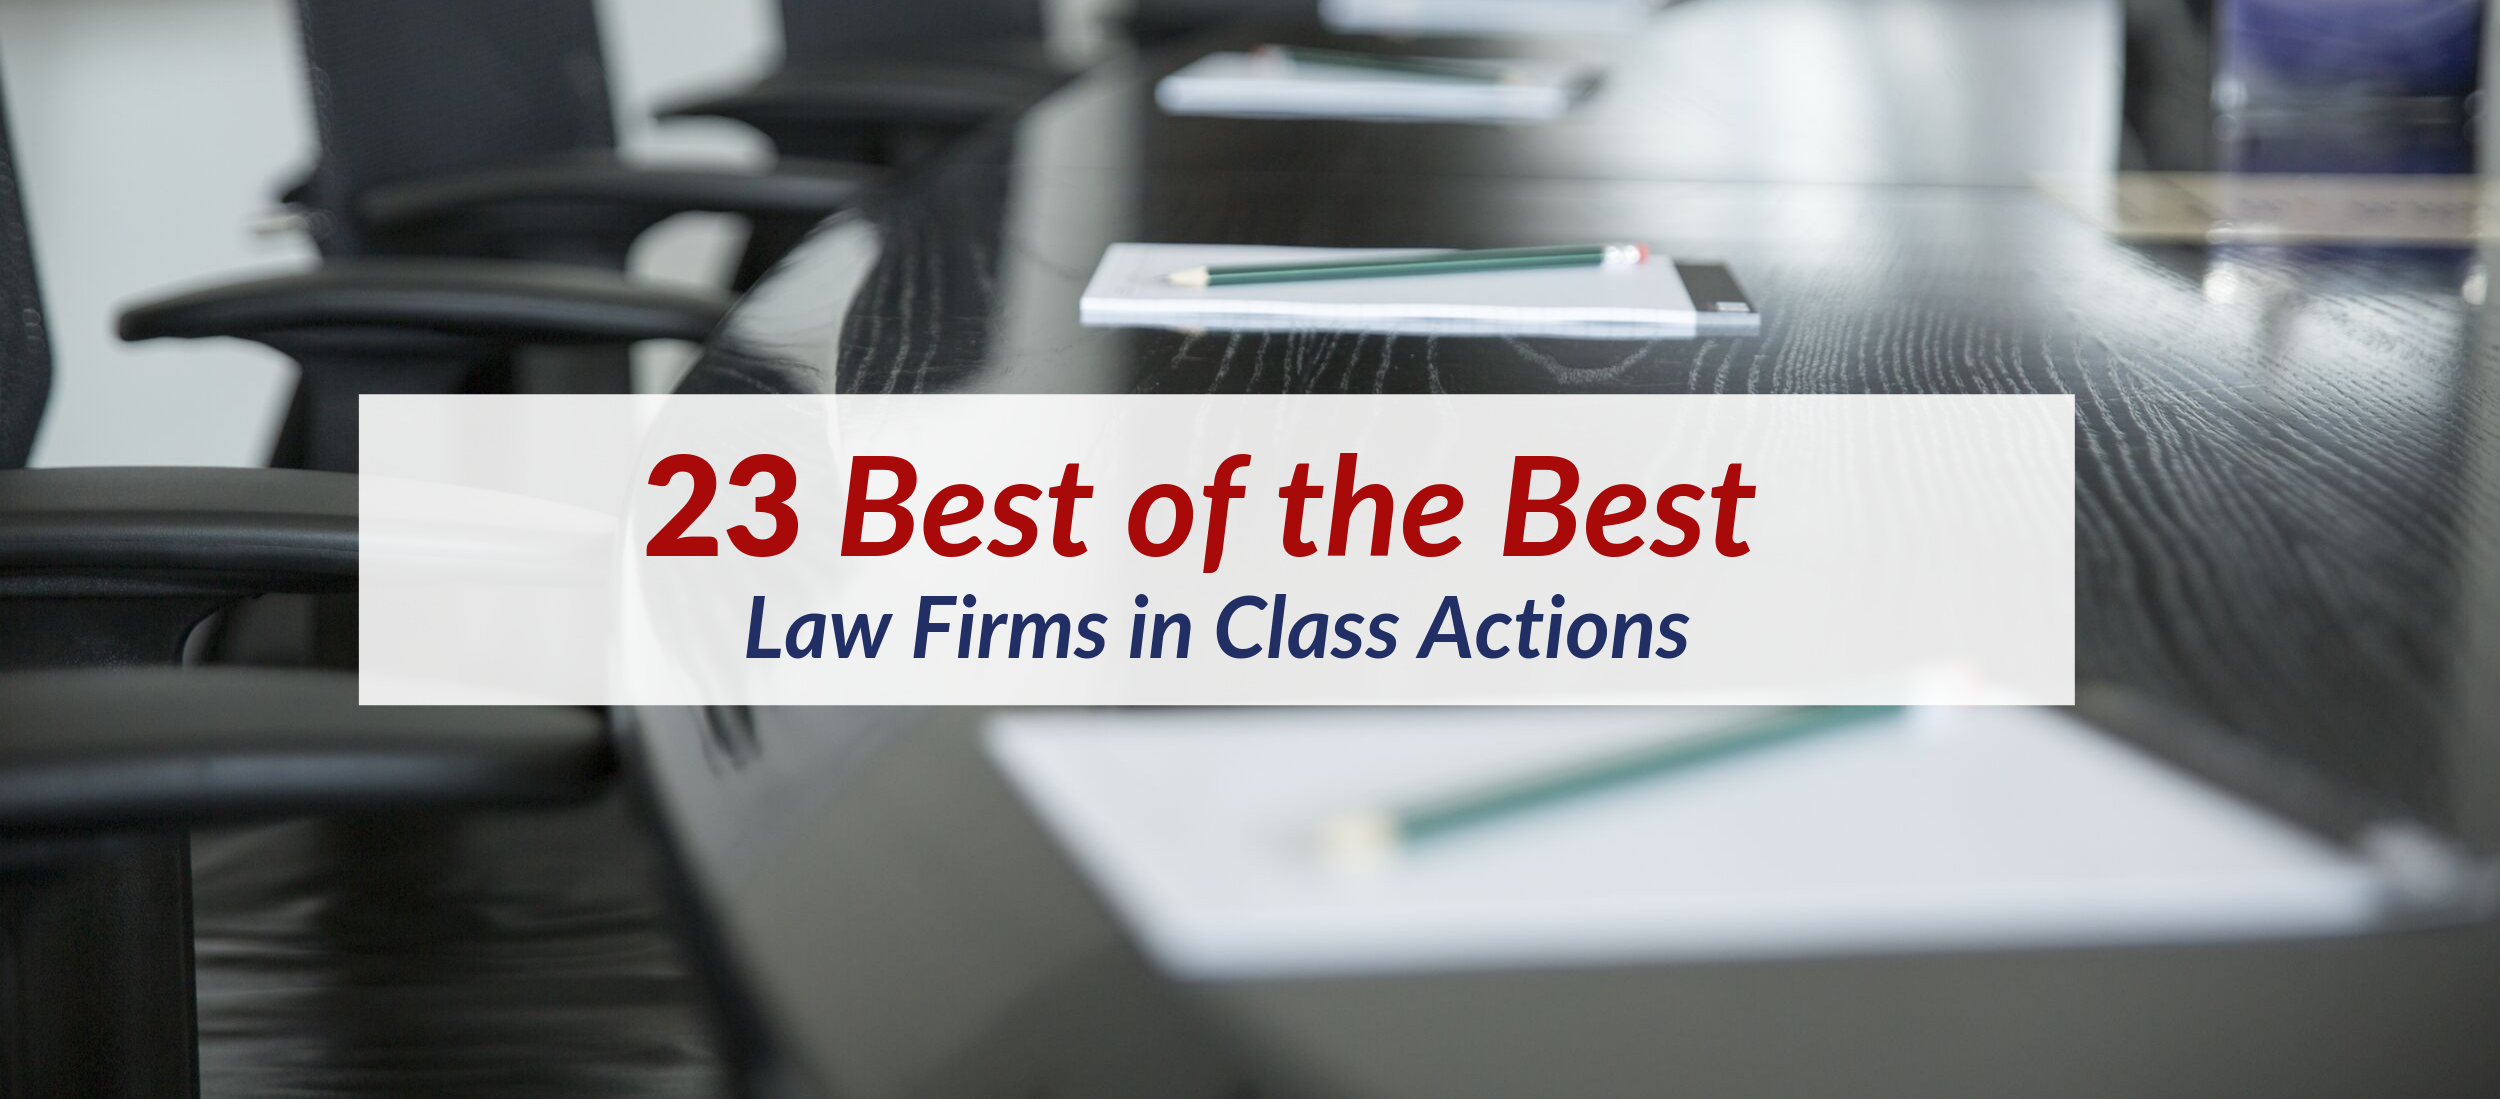 23 Best of the Best in Class Actions_header.png